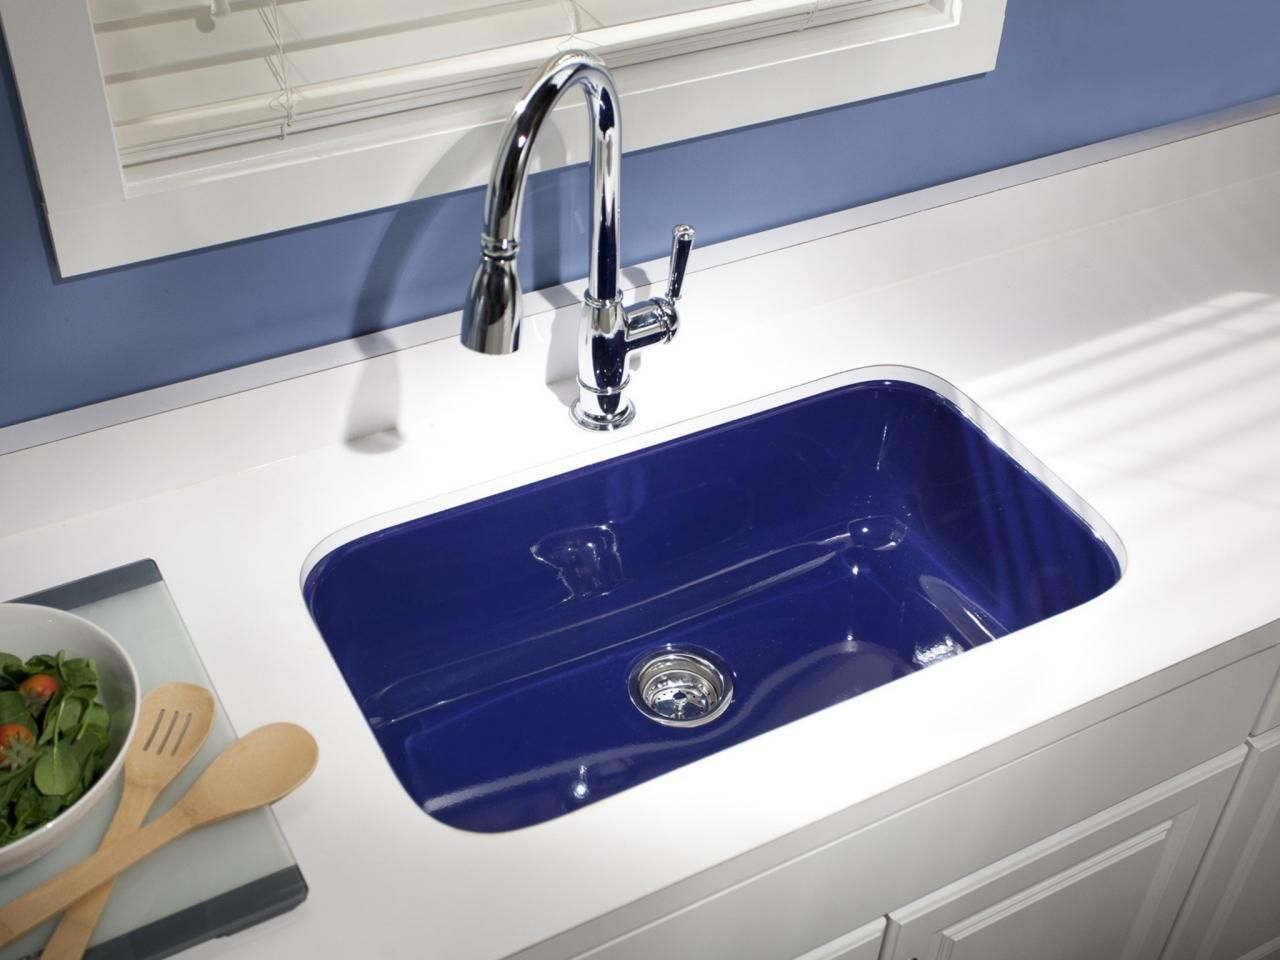 15 Easy Ways to Add Color to Your Kitchen | Fireclay sink, Sinks ...